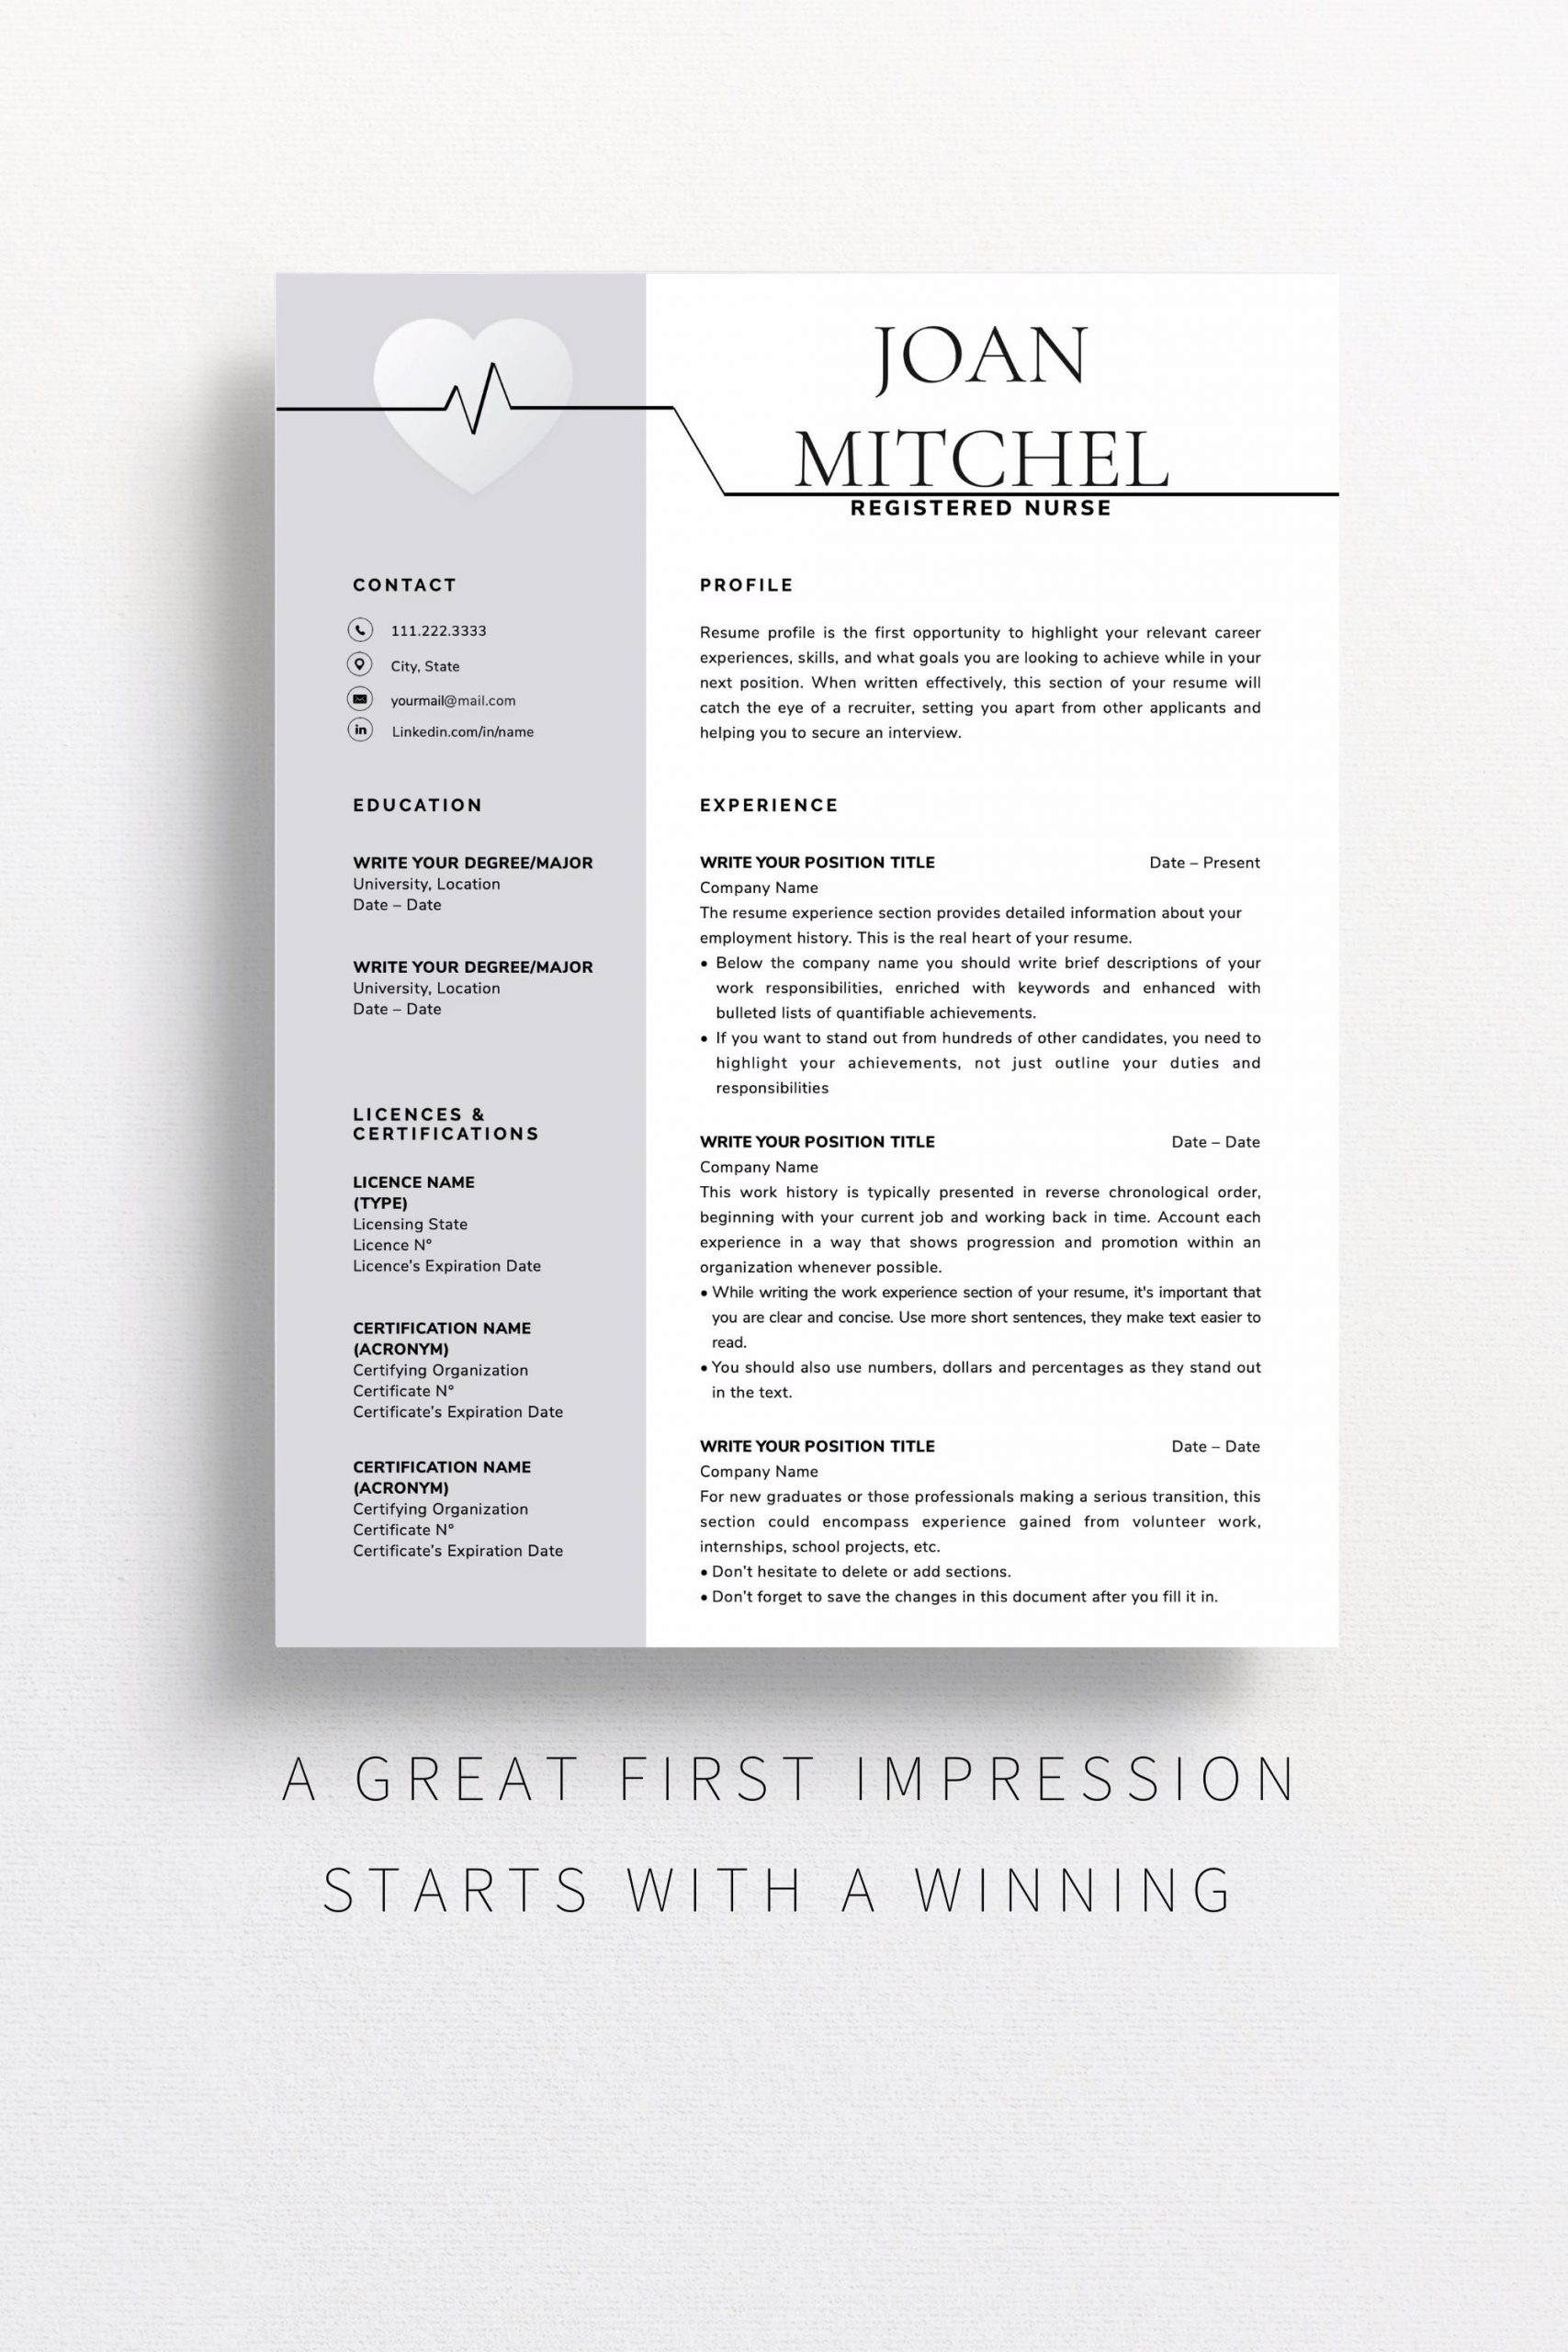 Free Functional Resume Template Of Creative Nurse Resume Template Simple Nursing Resume Template for Word Clean Medical Resume Rn